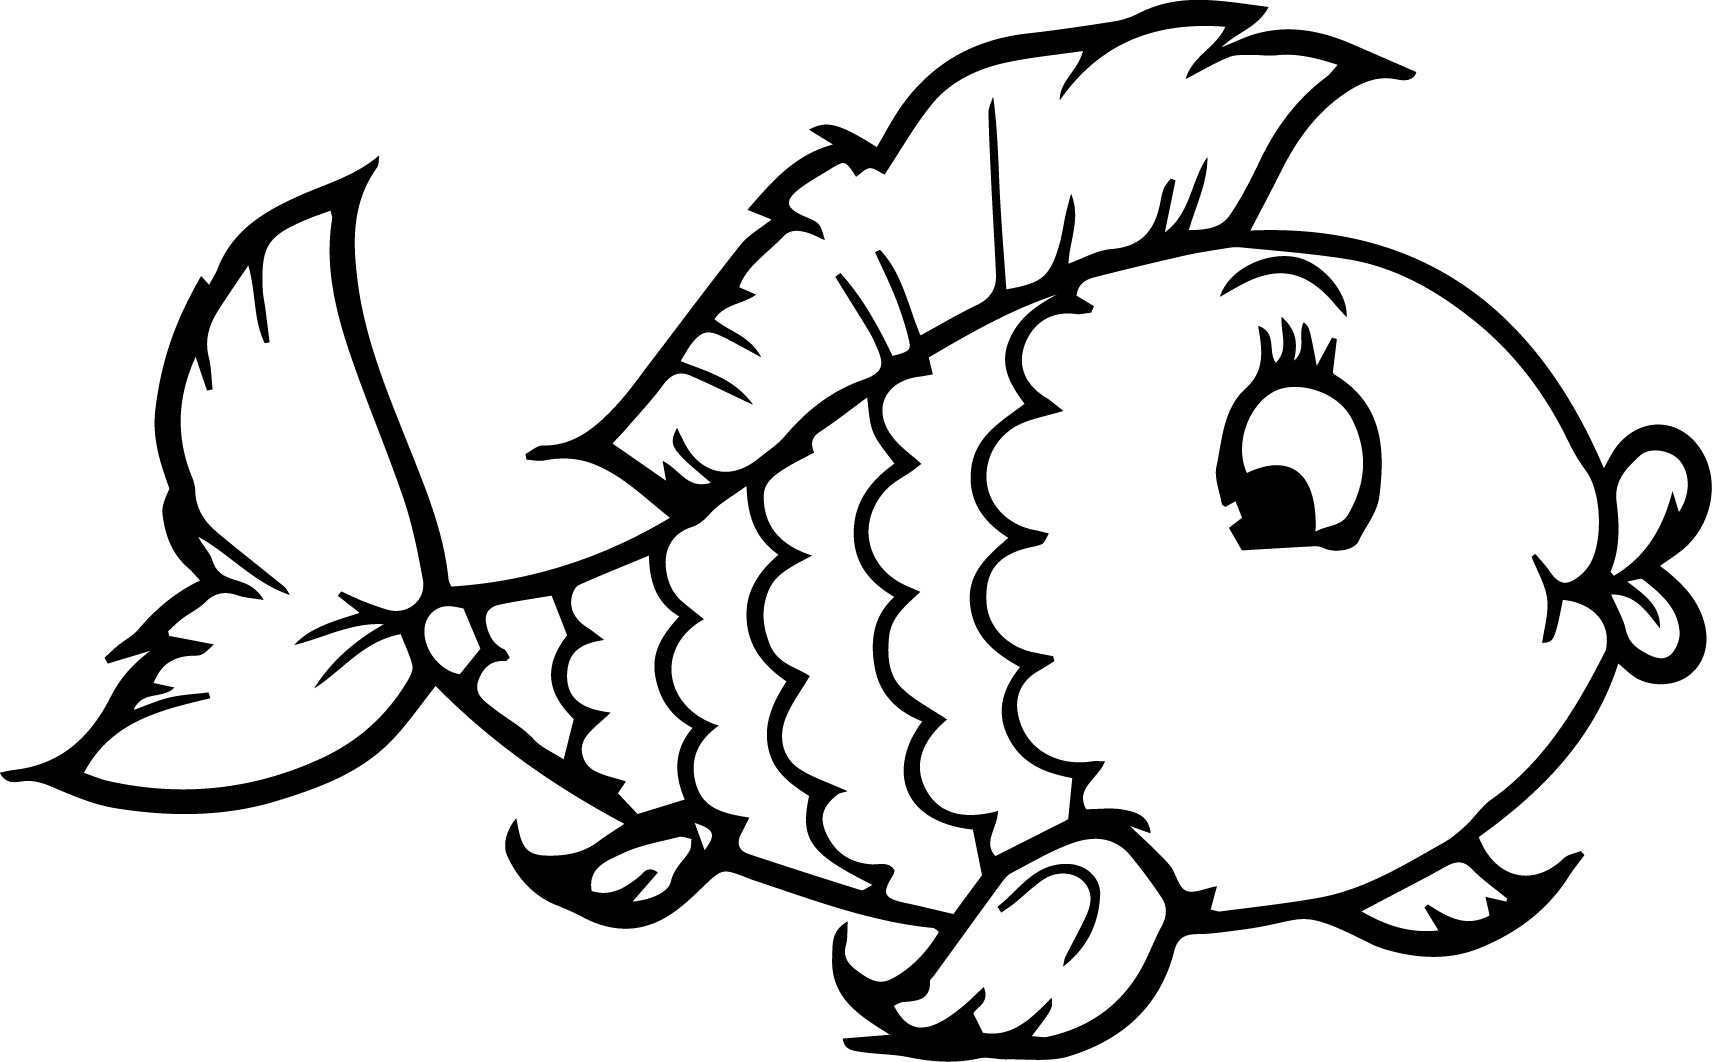 pictures of fish coloring pages print download cute and educative fish coloring pages pages coloring pictures fish of